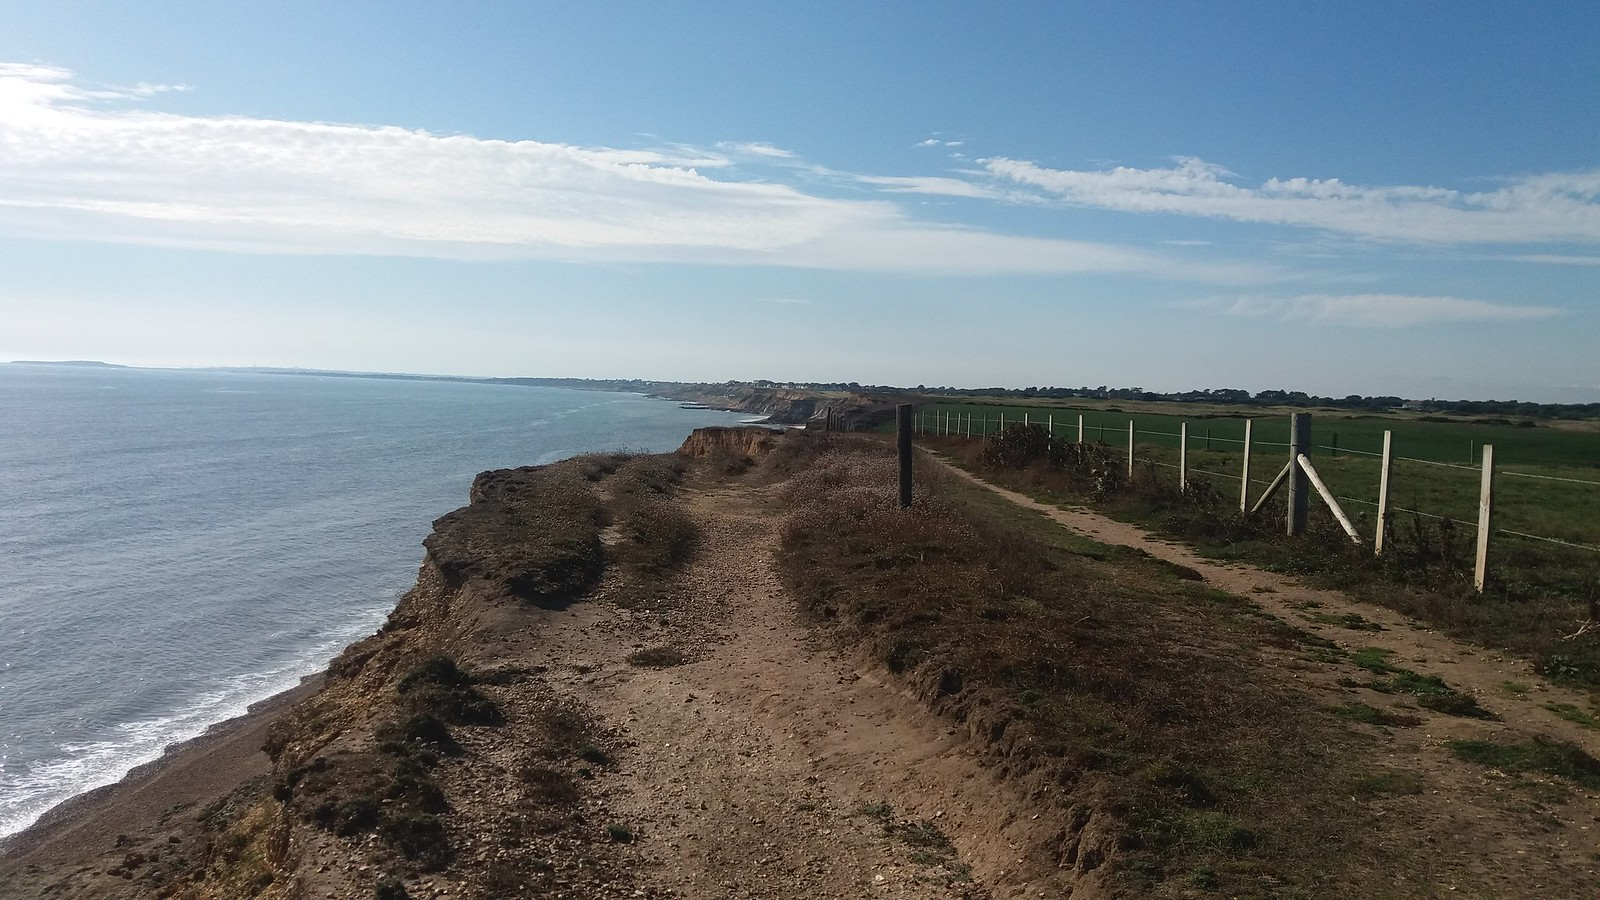 20160907_161429 Cliff path between Hordle Cliff and Barton on Sea